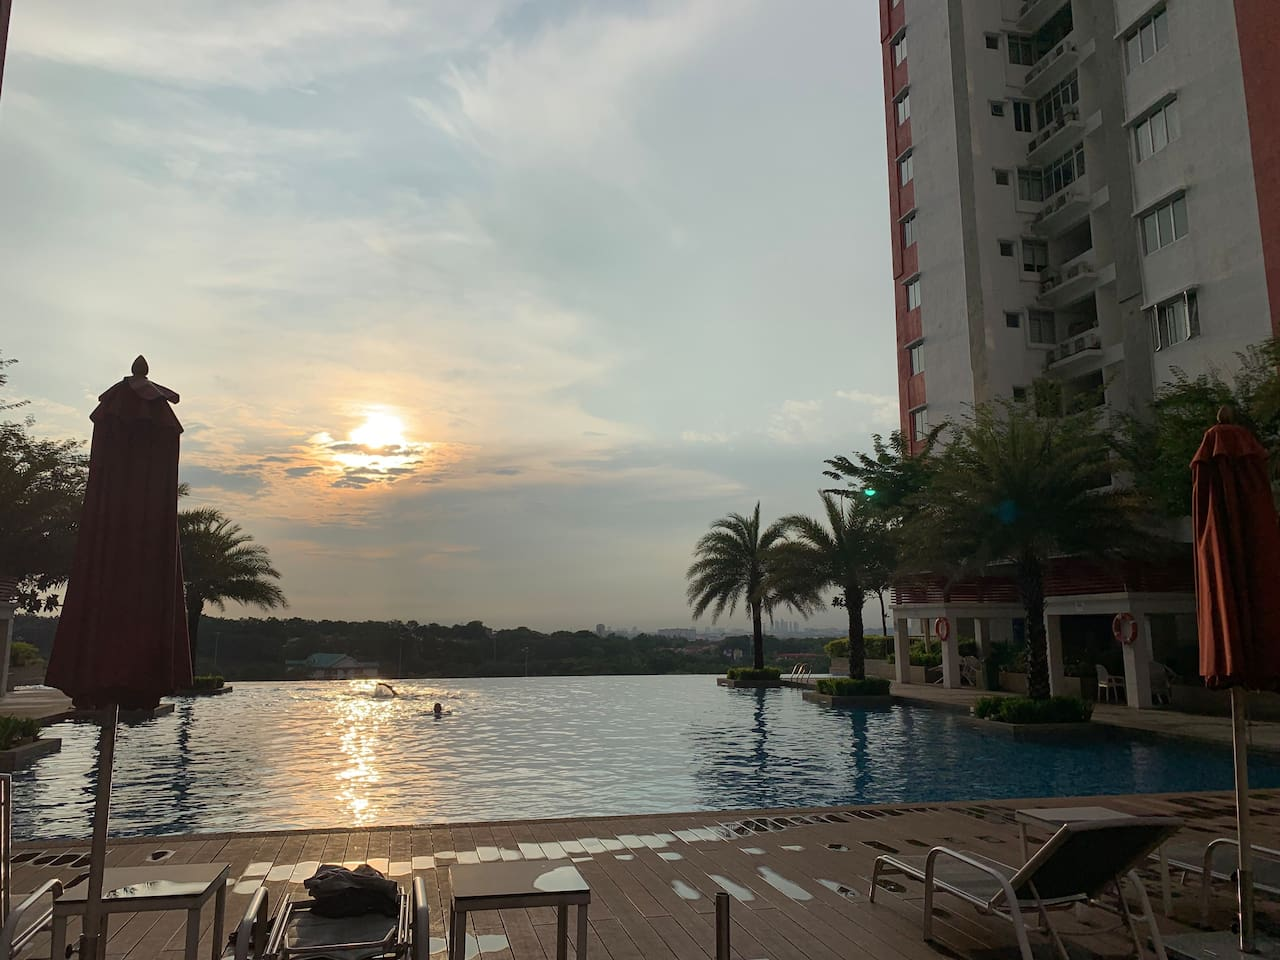 Sunset is amazing by the pool :)